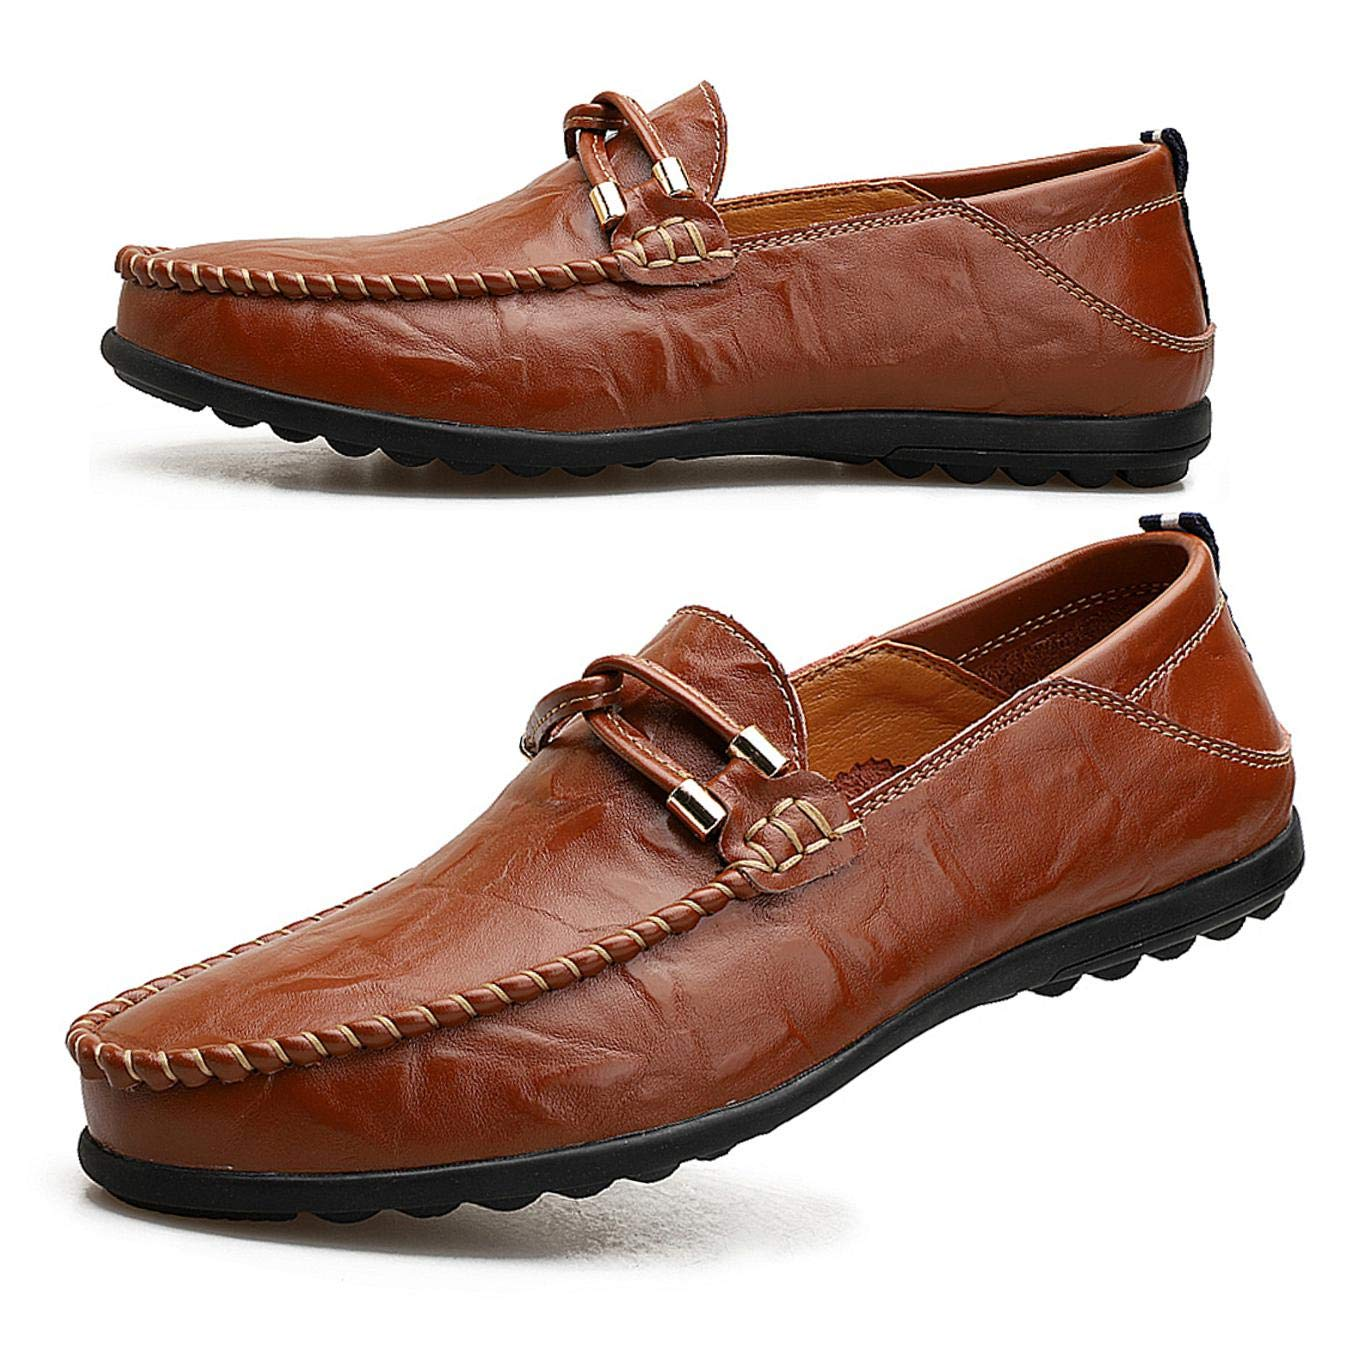 Men Breathable Driving Casual Boat Shoes Leather Flats Moccasin Slip On Loafers